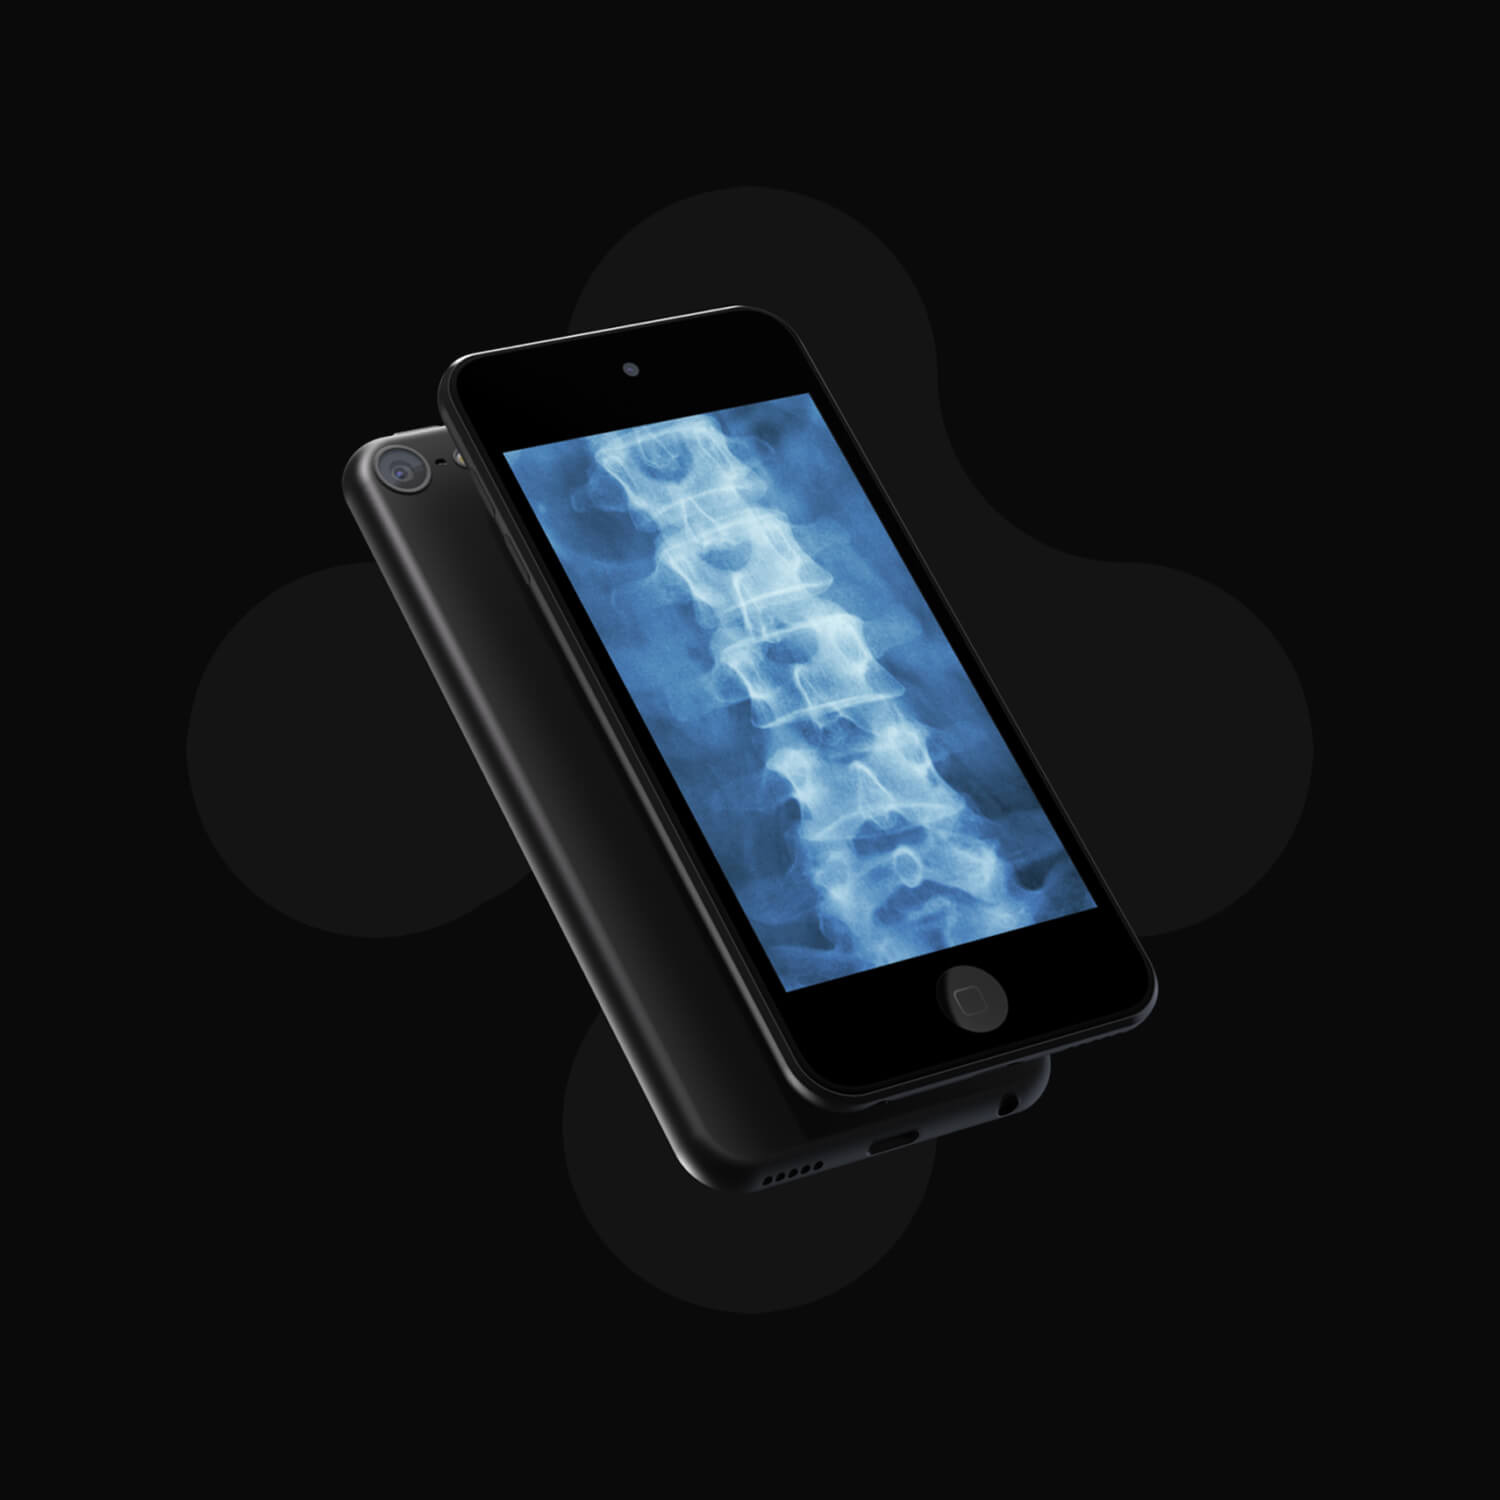 4th generation ipod touch displaying an x-ray image of a spine